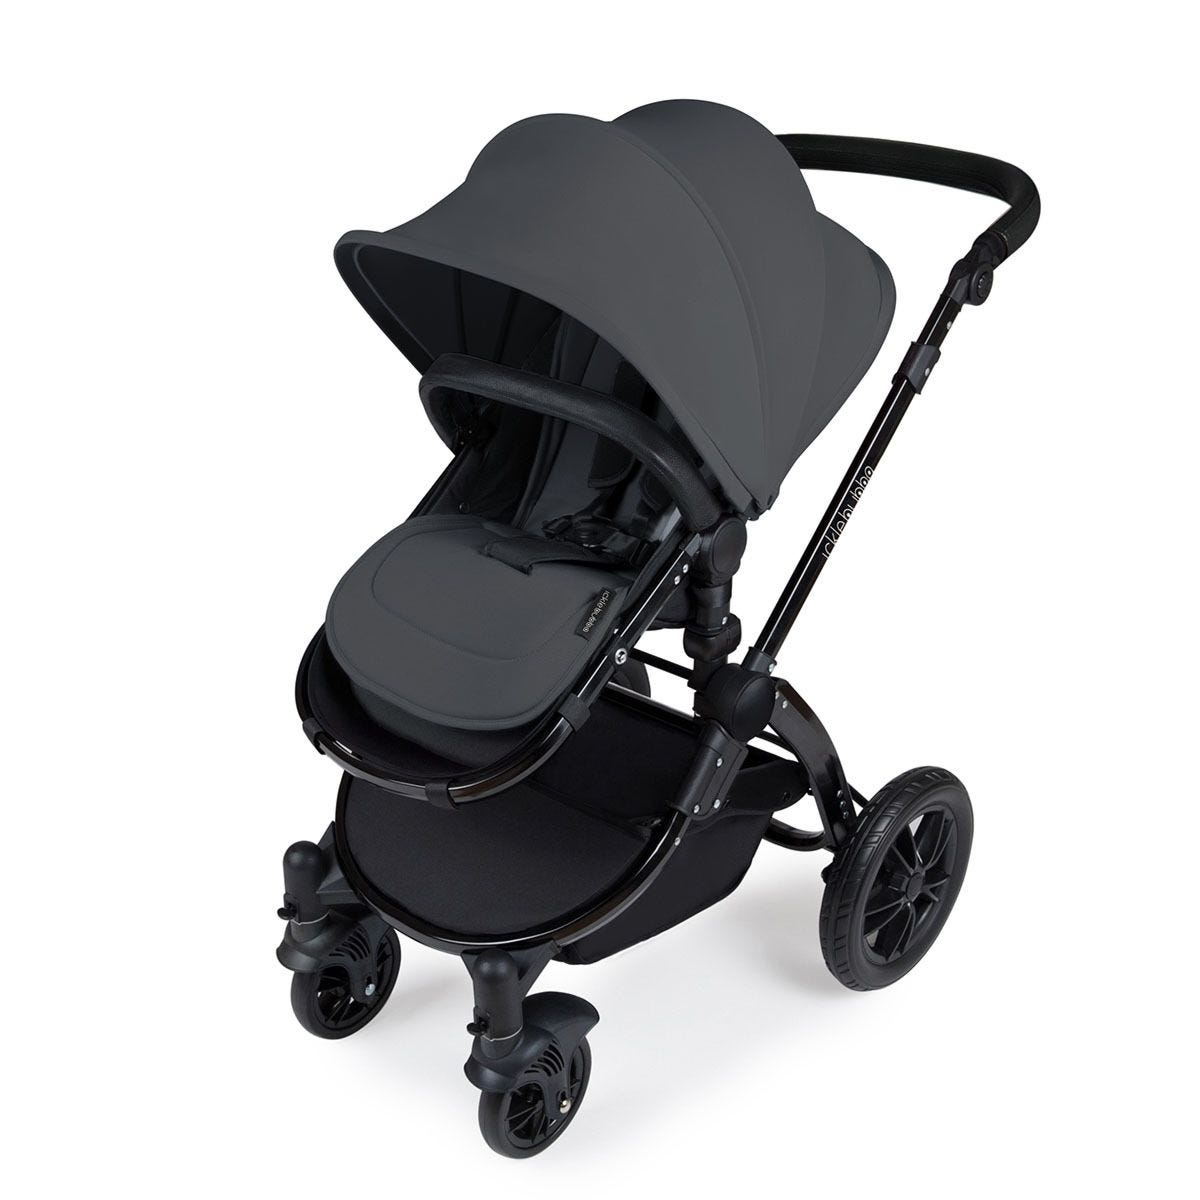 Ickle Bubba Stomp V3 i-Size Travel System with Isofix Base - Graphite Grey on Black with Black Handles